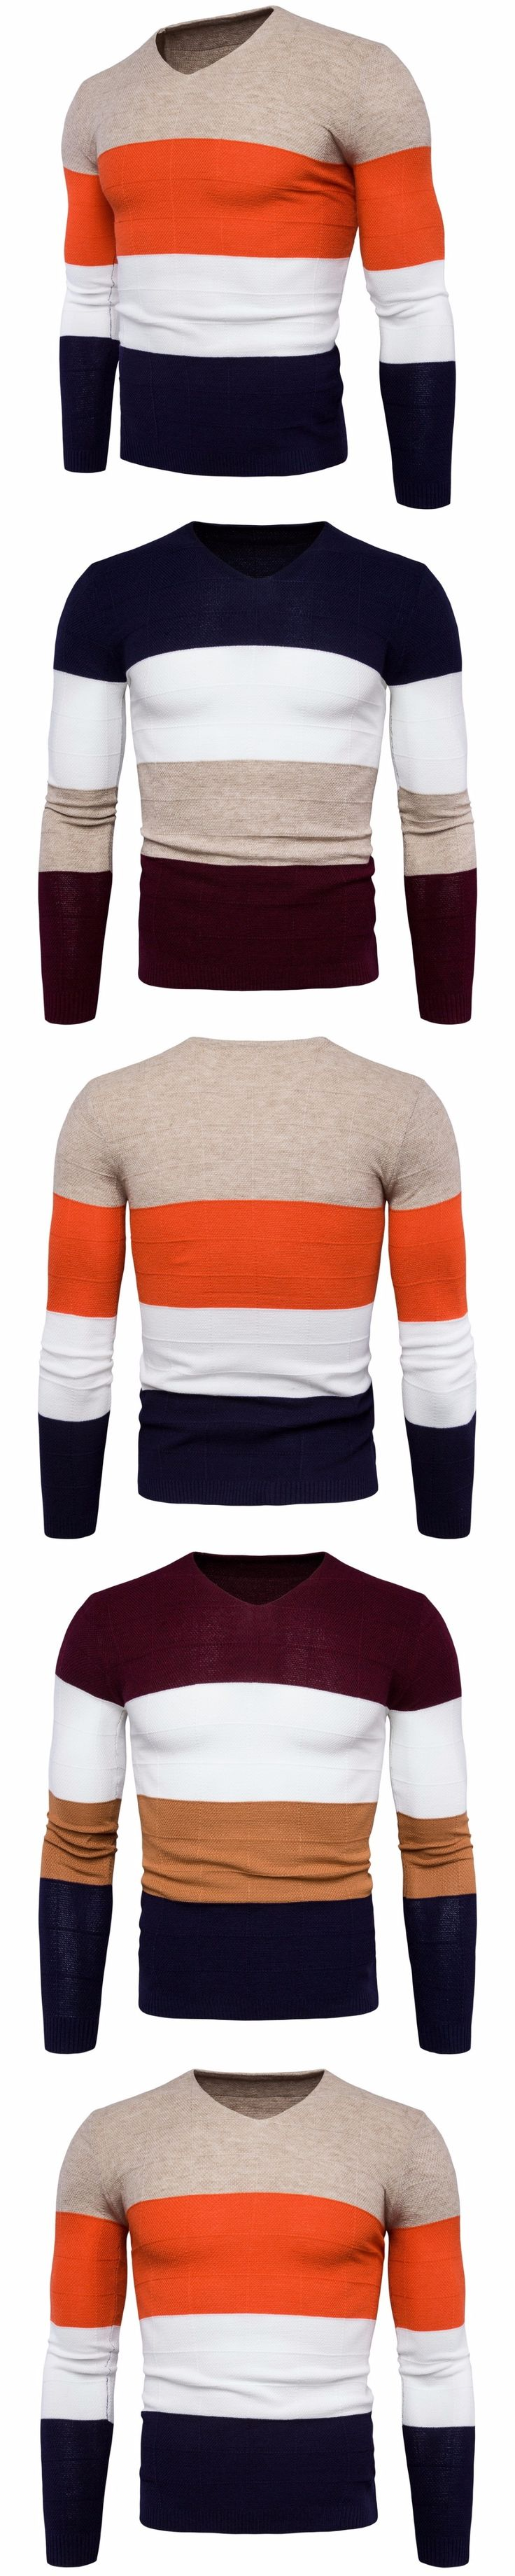 2017 New Fashion Multicolor Striped Pullover Sweater Men V-Neck Autumn Winter Mens Wool Sweaters Brand Knitwear Pull Homme